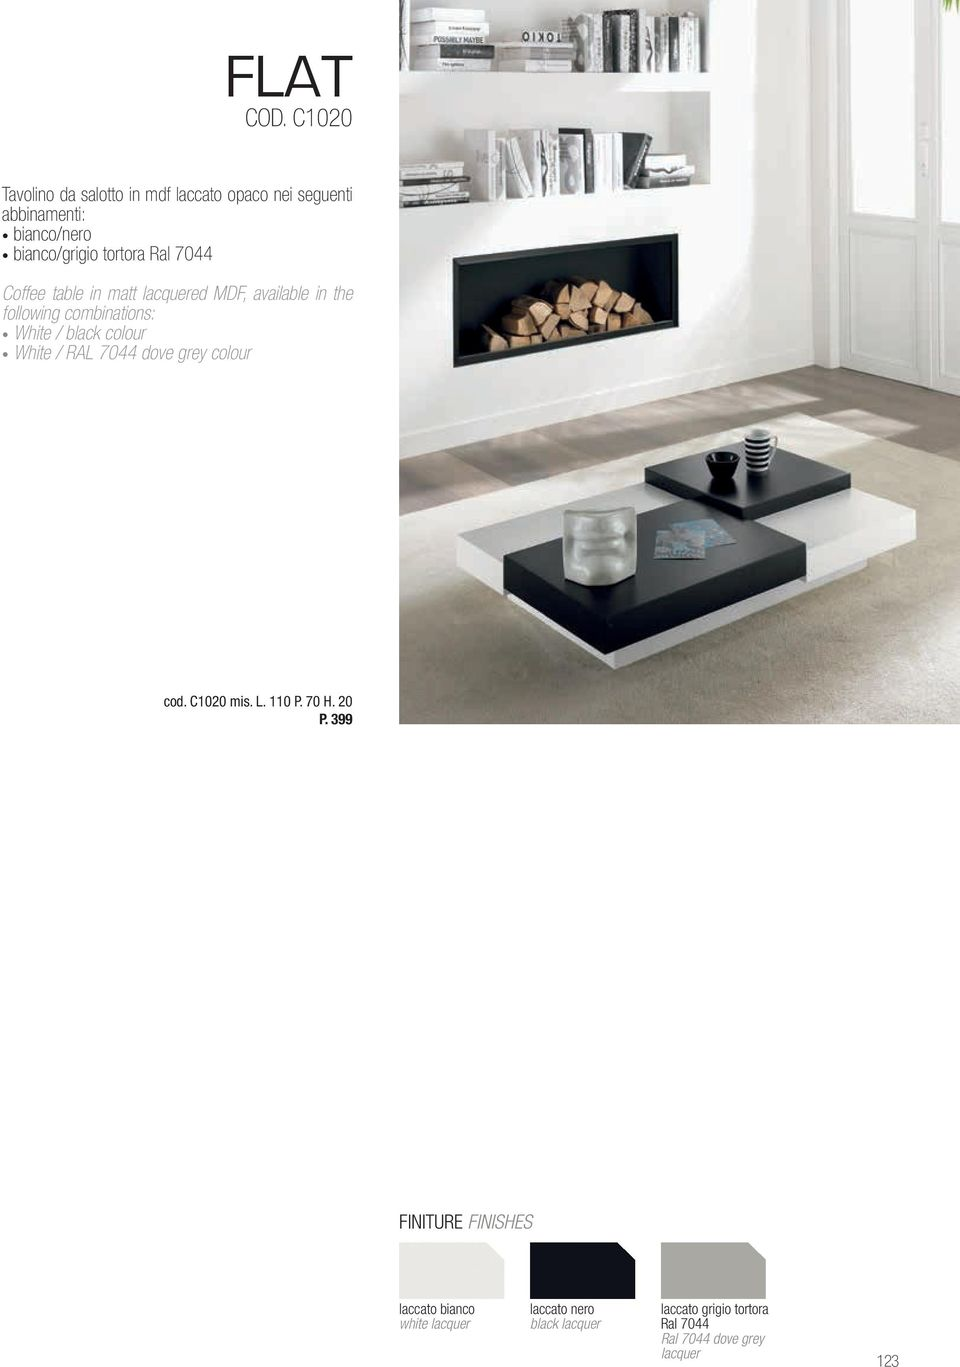 Ral 7044 Coffee table in matt lacquered MDF, available in the following combinations: White / black colour